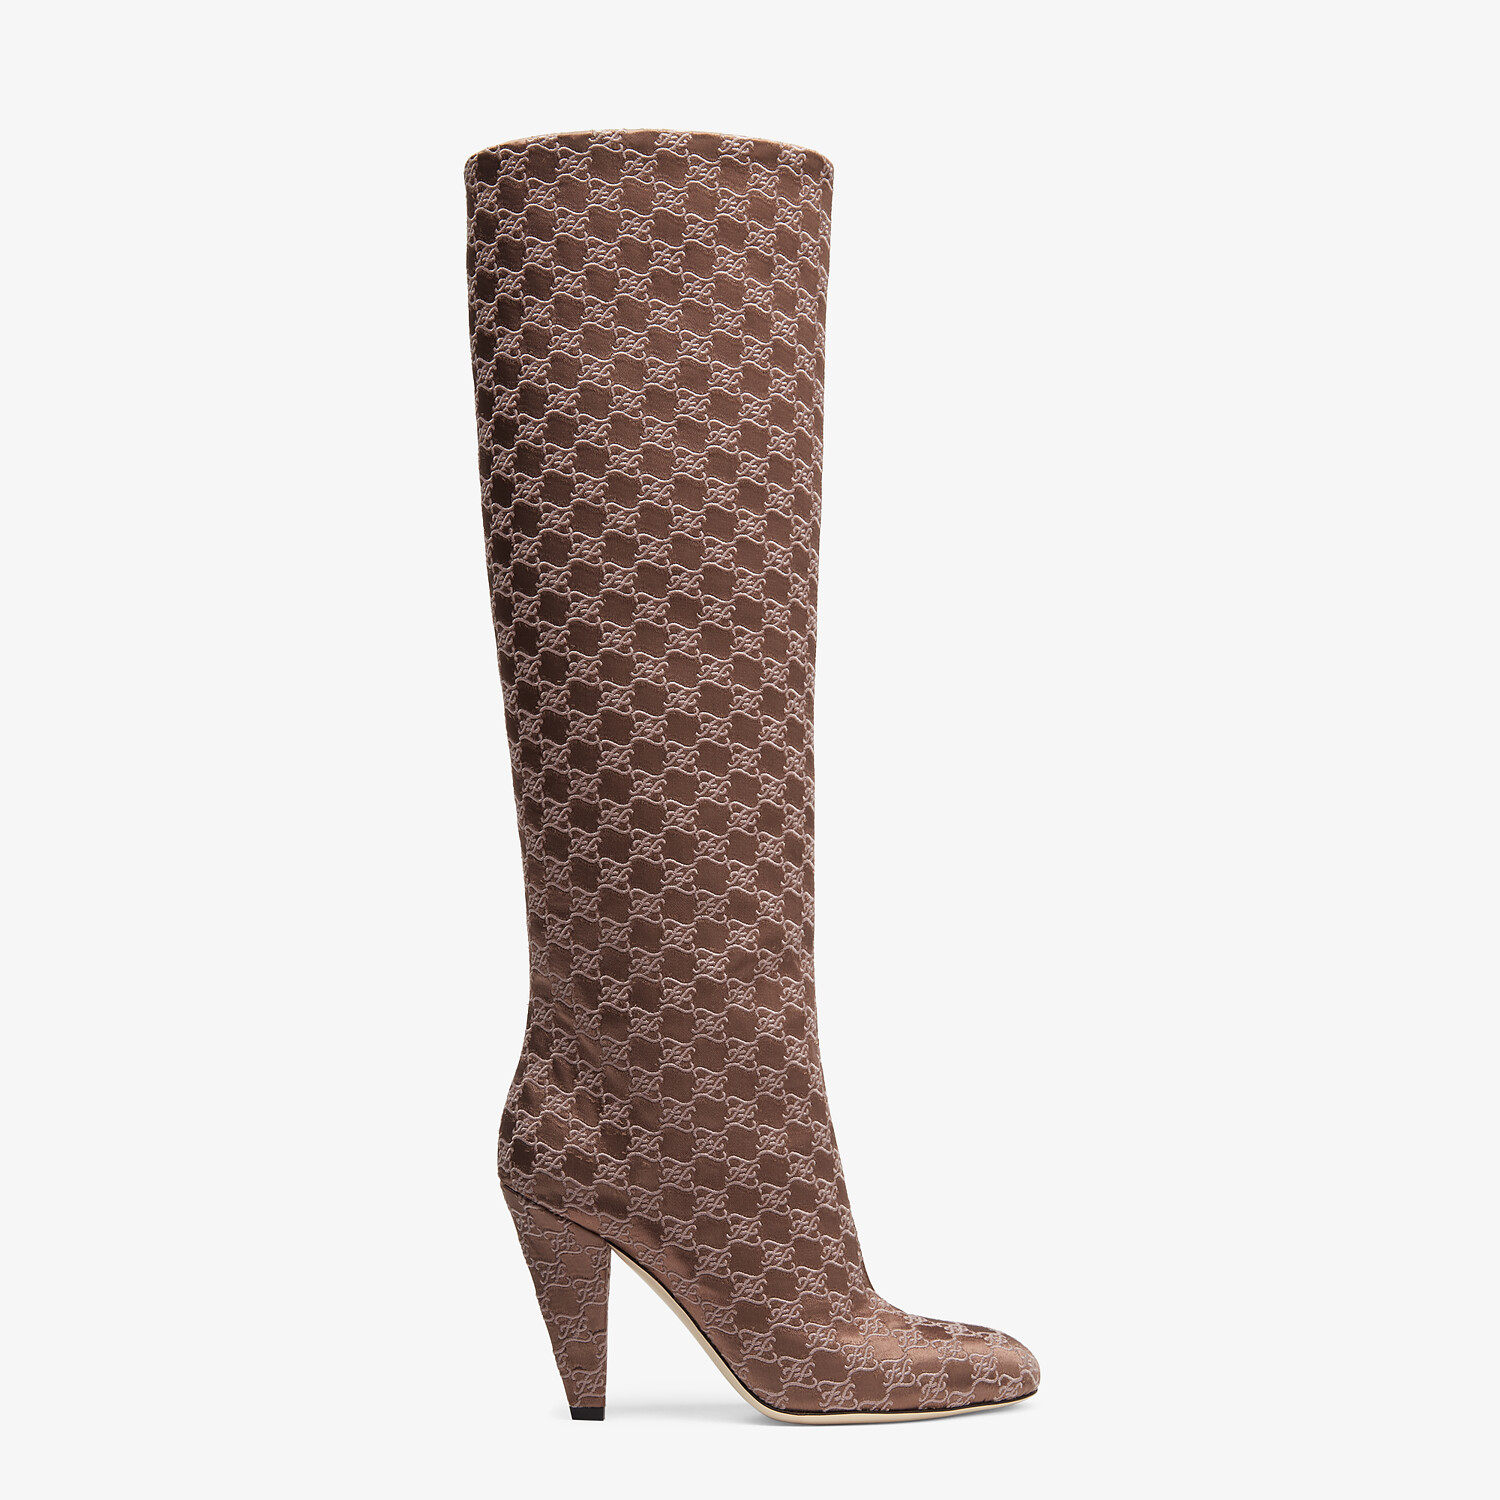 FENDI KARLIGRAPHY - High-heeled boots in brown fabric - view 1 detail